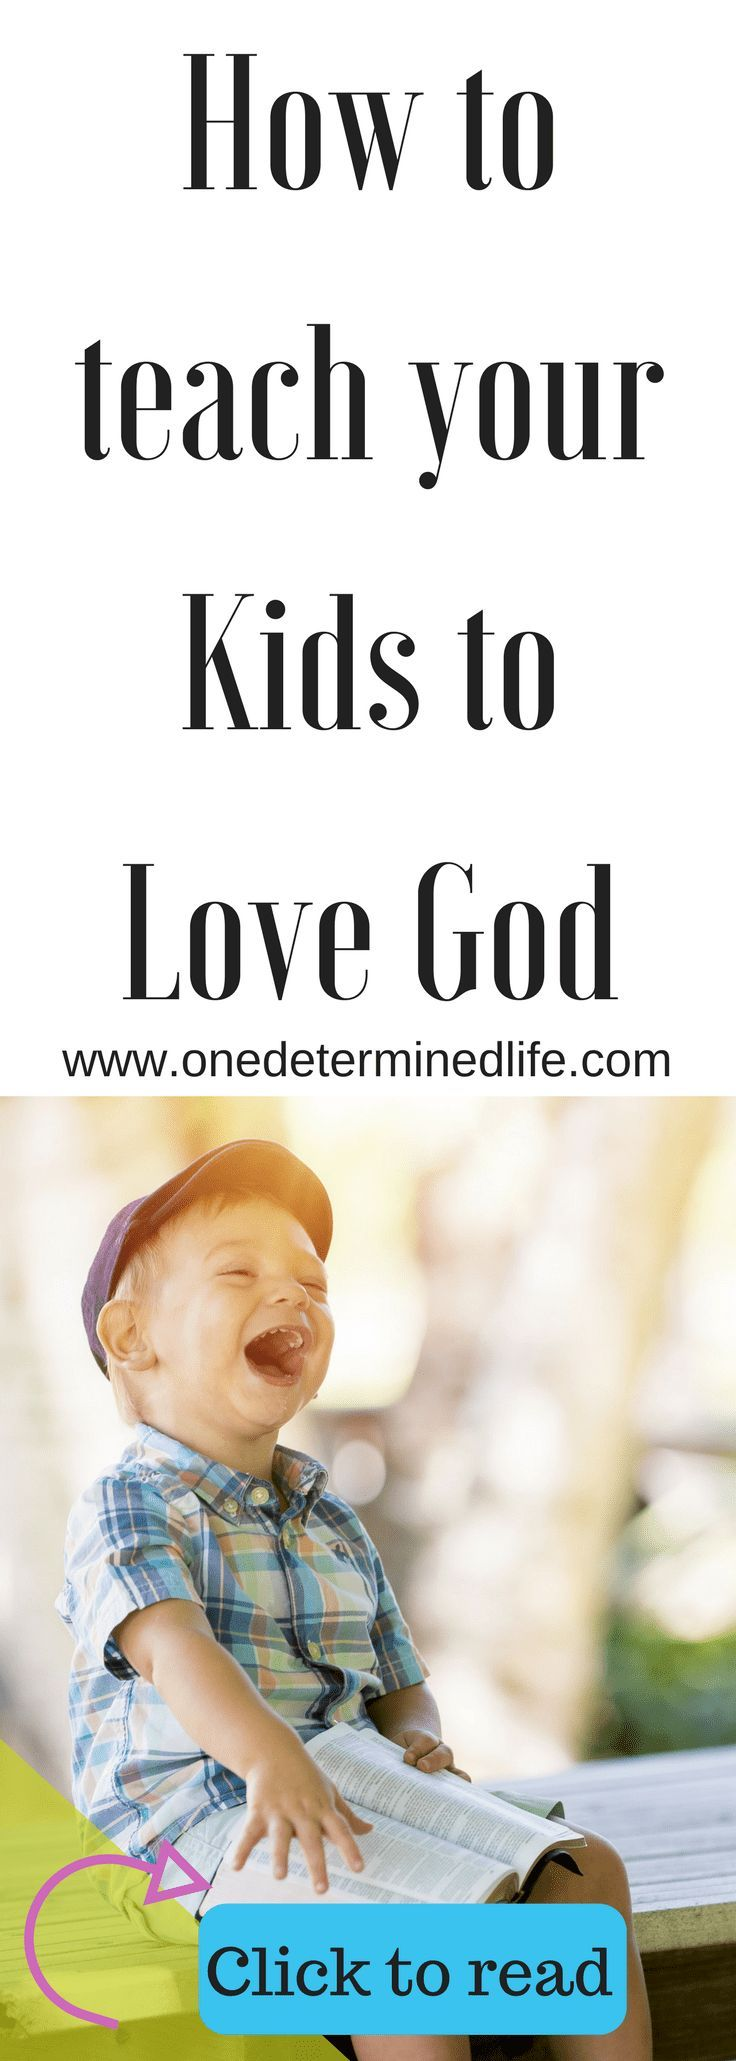 How to teach your kids to love God, teaching your children to love God, teach kids the love of God #christianparenting, #biblereading, #bibleforkids, #raisethemtoloveGodbest